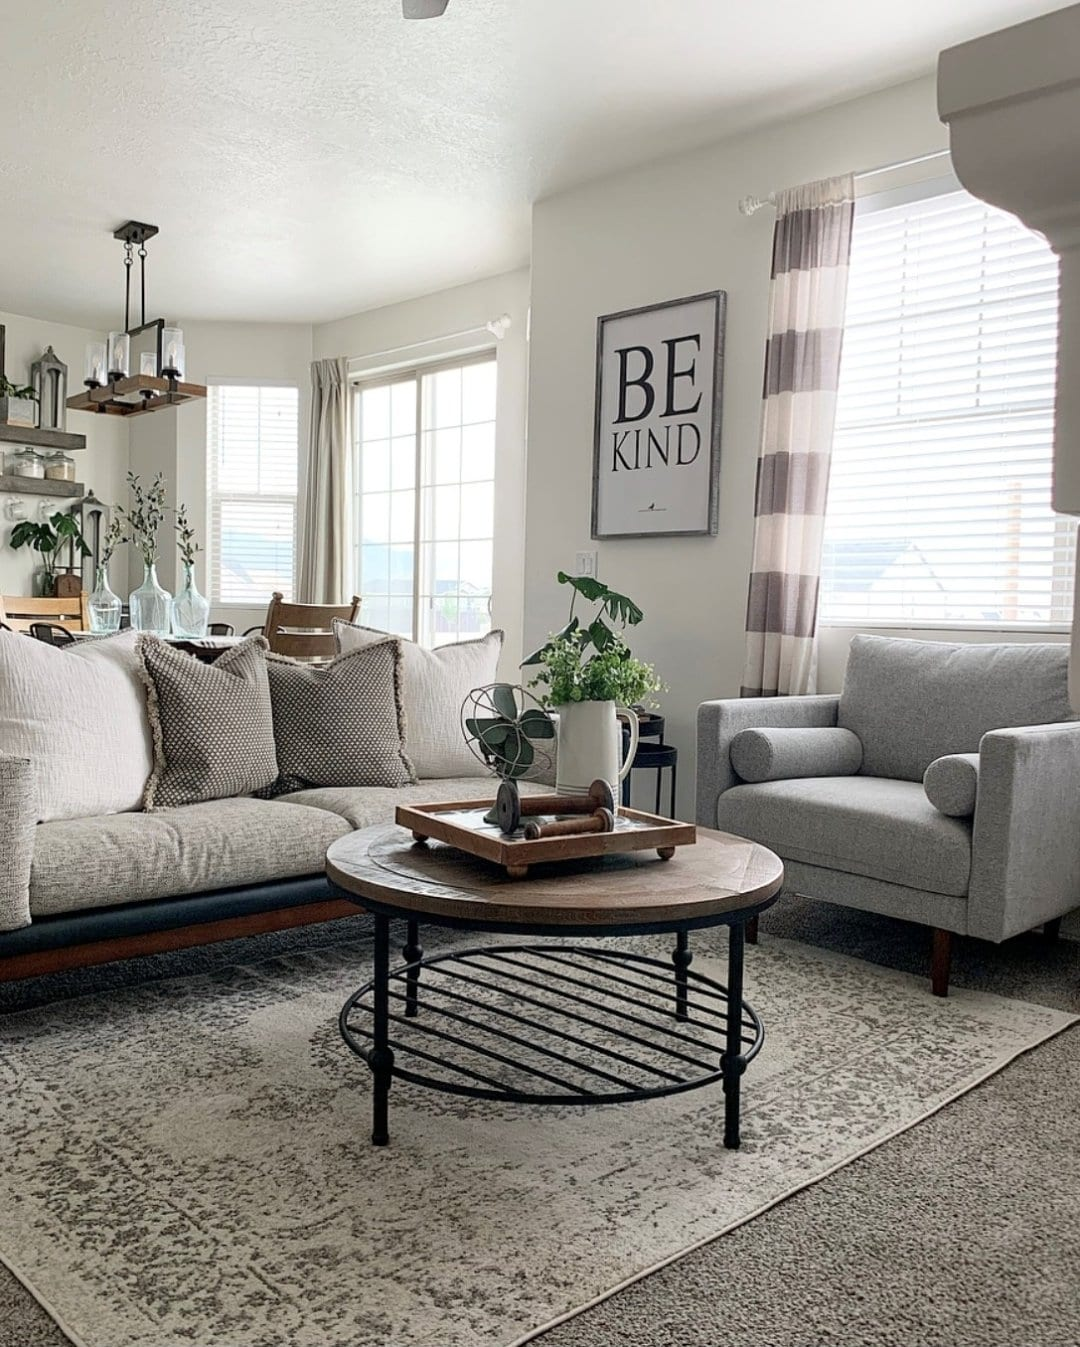 Hang Wide Striped Neutrals for a Casual Vibe